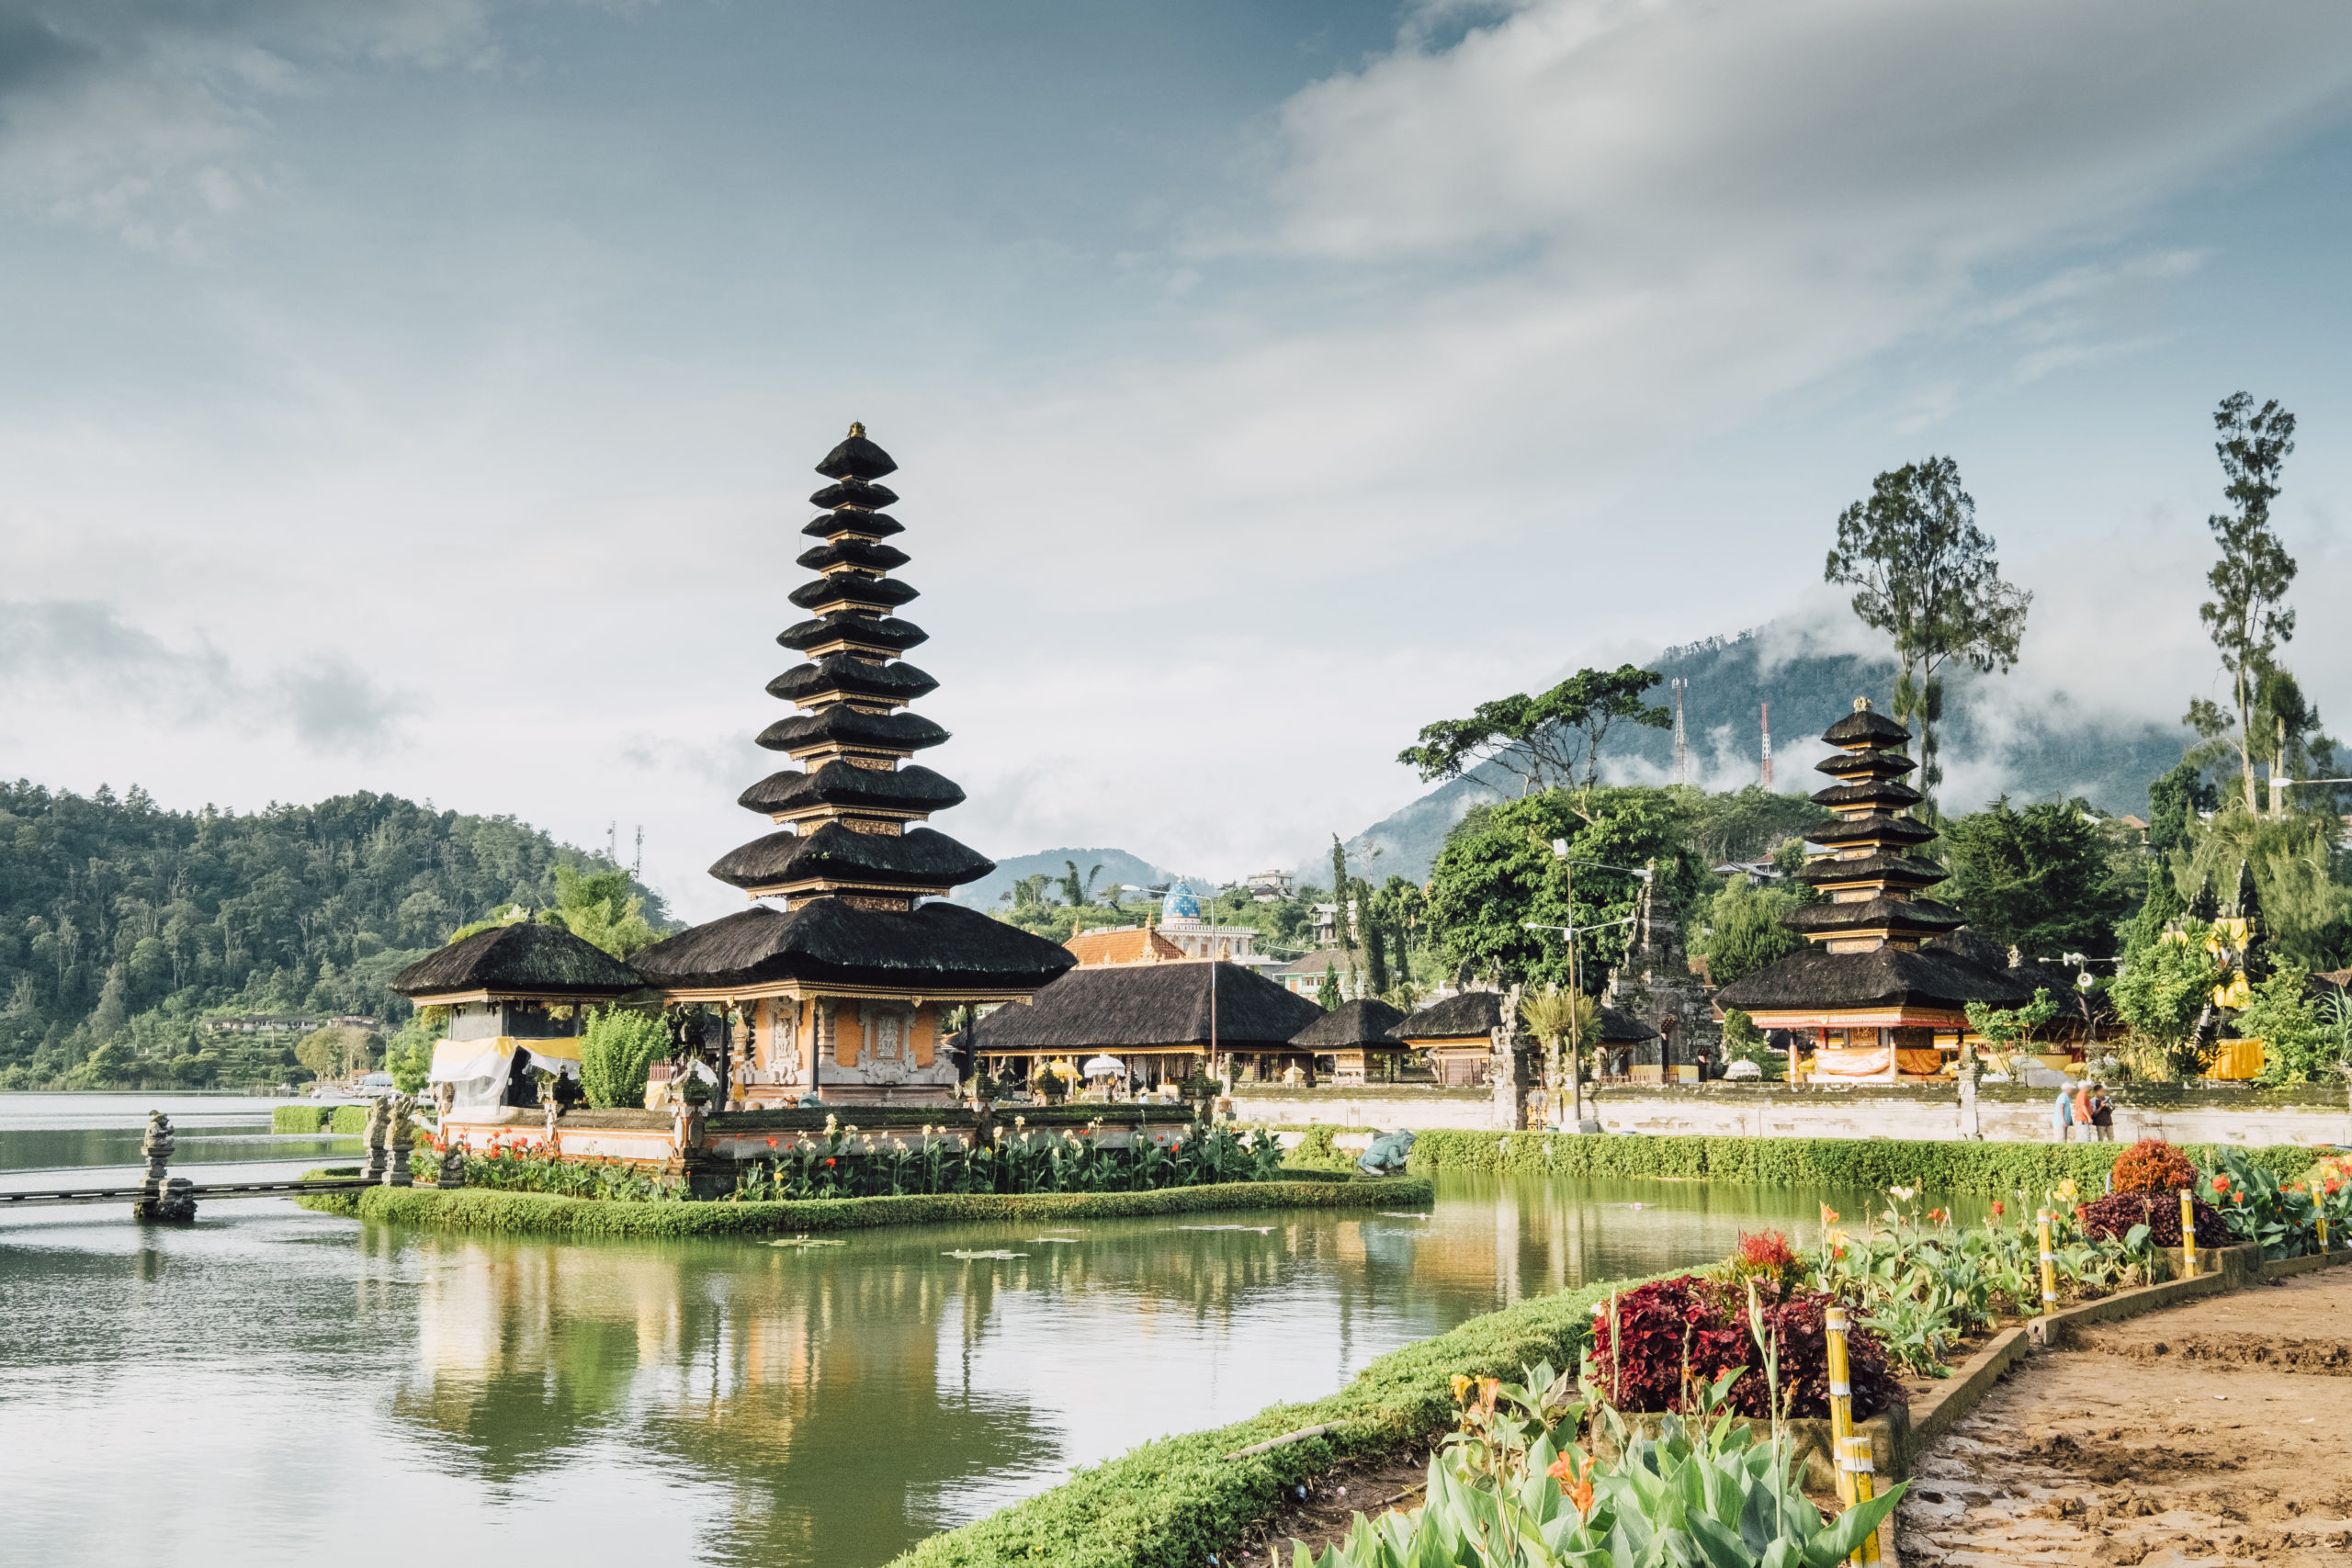 Non-touristy activities to do in Bali